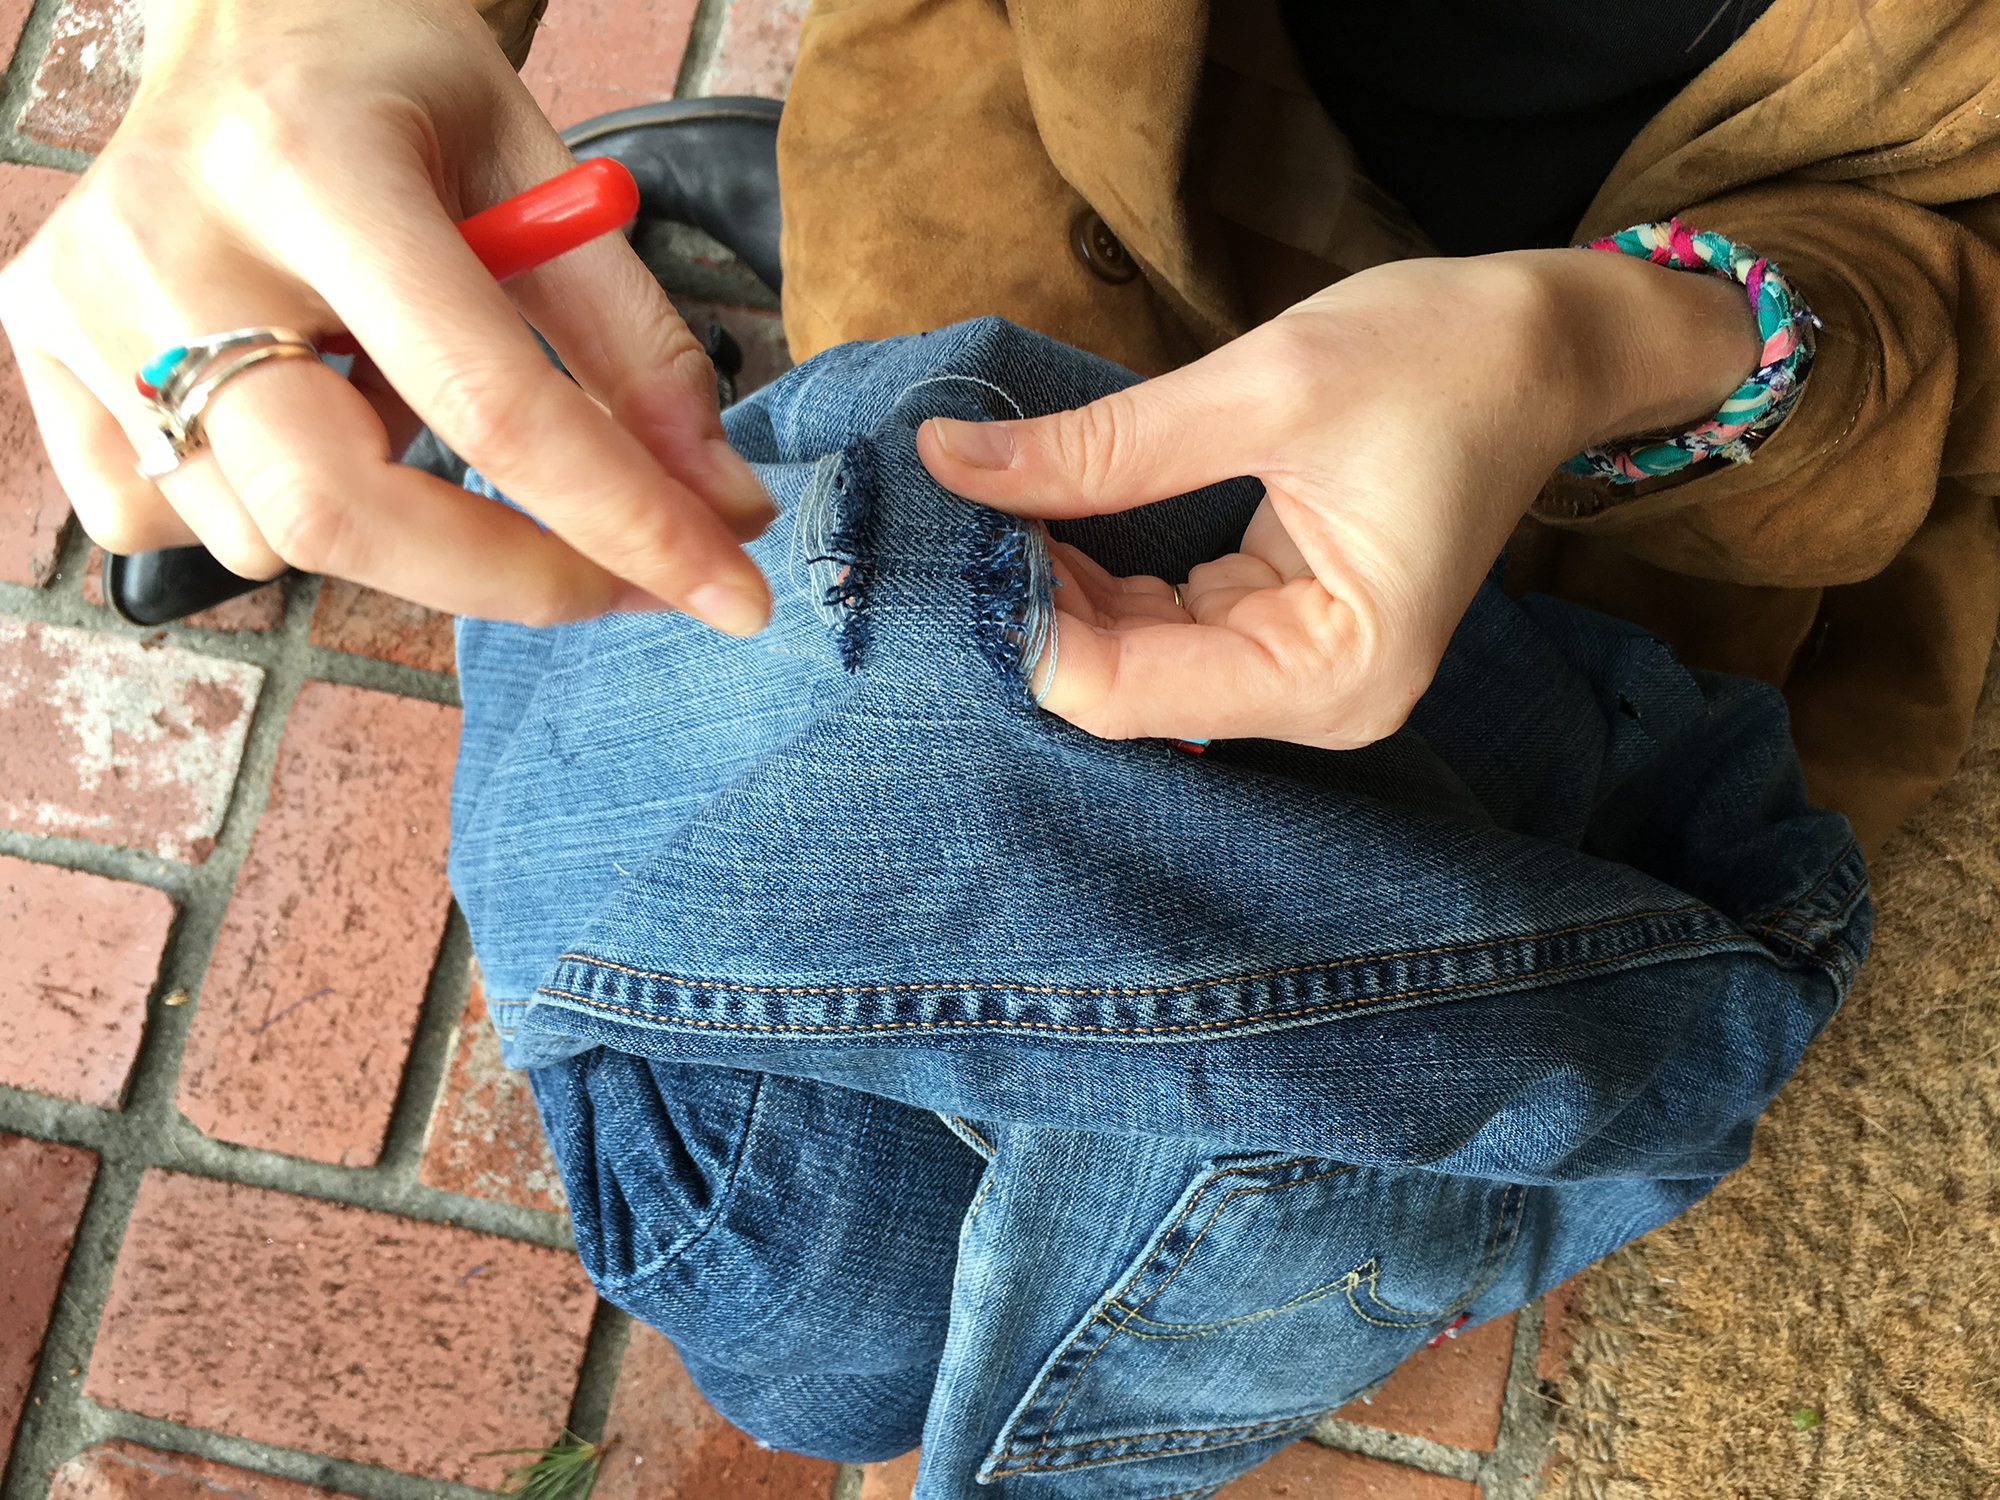 Pieceology-Vintage-How-To-DIY-Denim-Jeans-Ripping-Blog-7.jpg